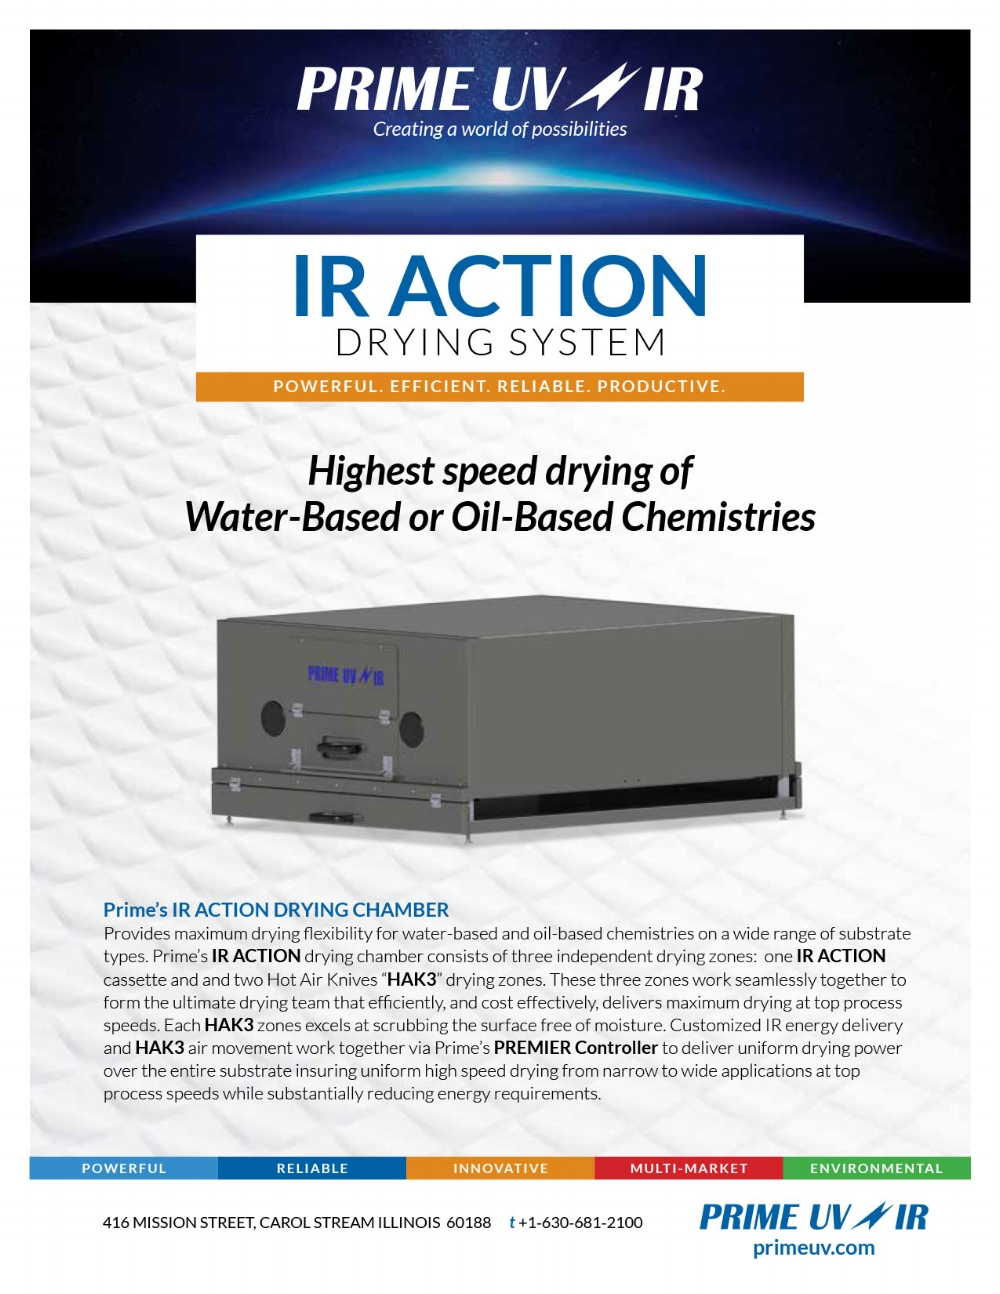 IR Action Drying System Information sheet